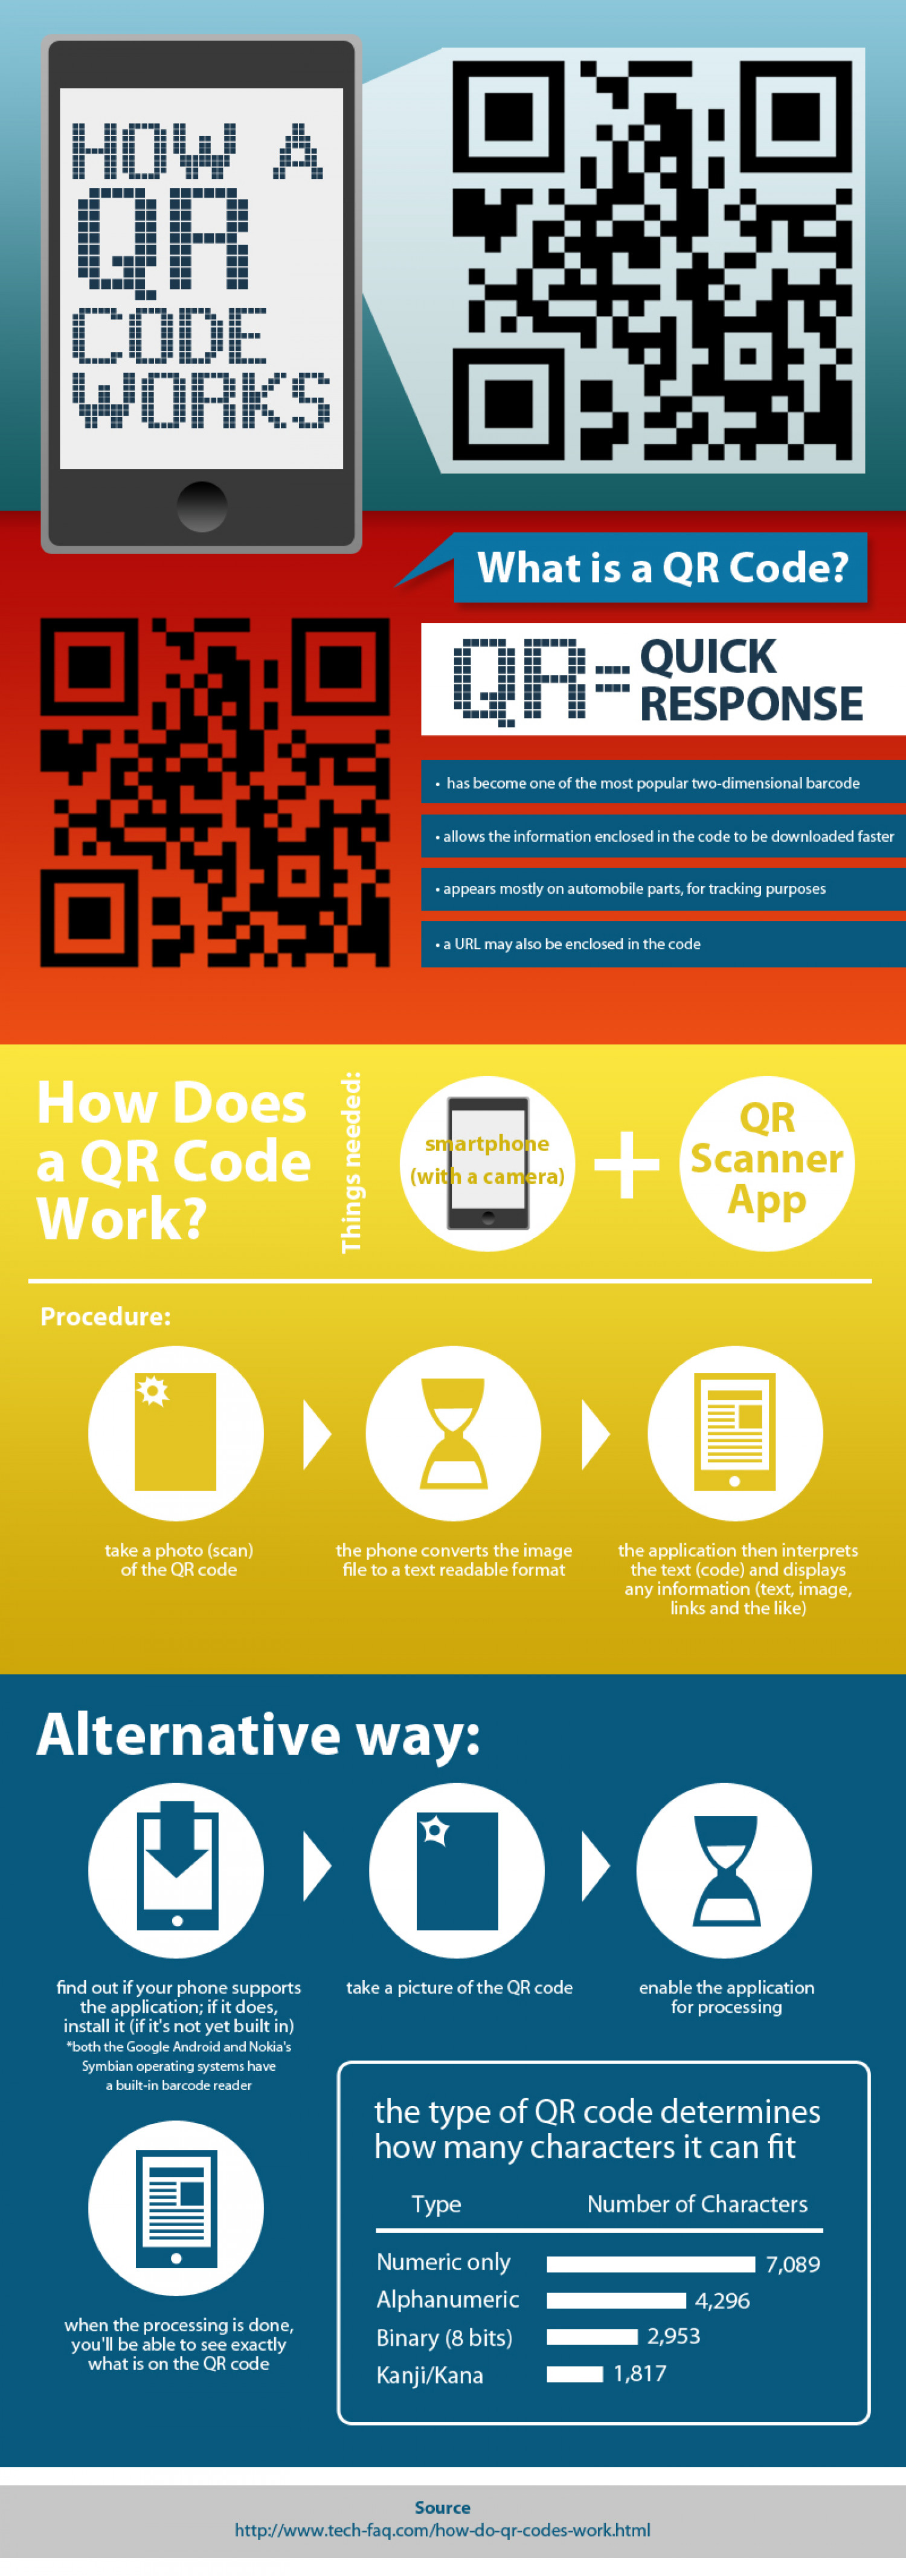 How a QR Code Works Infographic